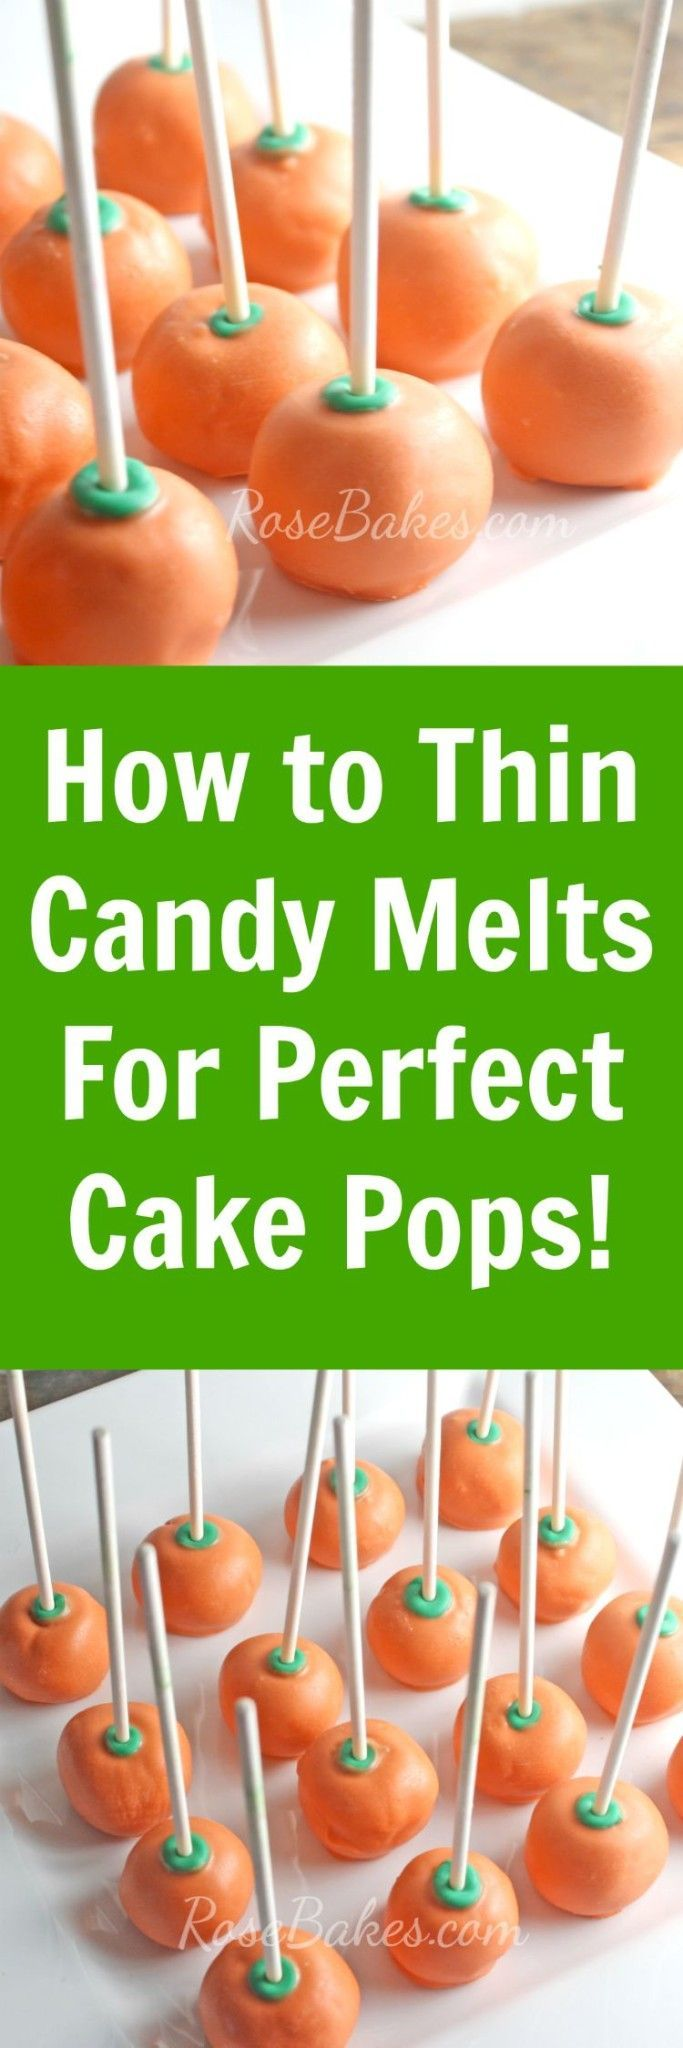 How to Thin Candy Melts for Perfect Cake Pops